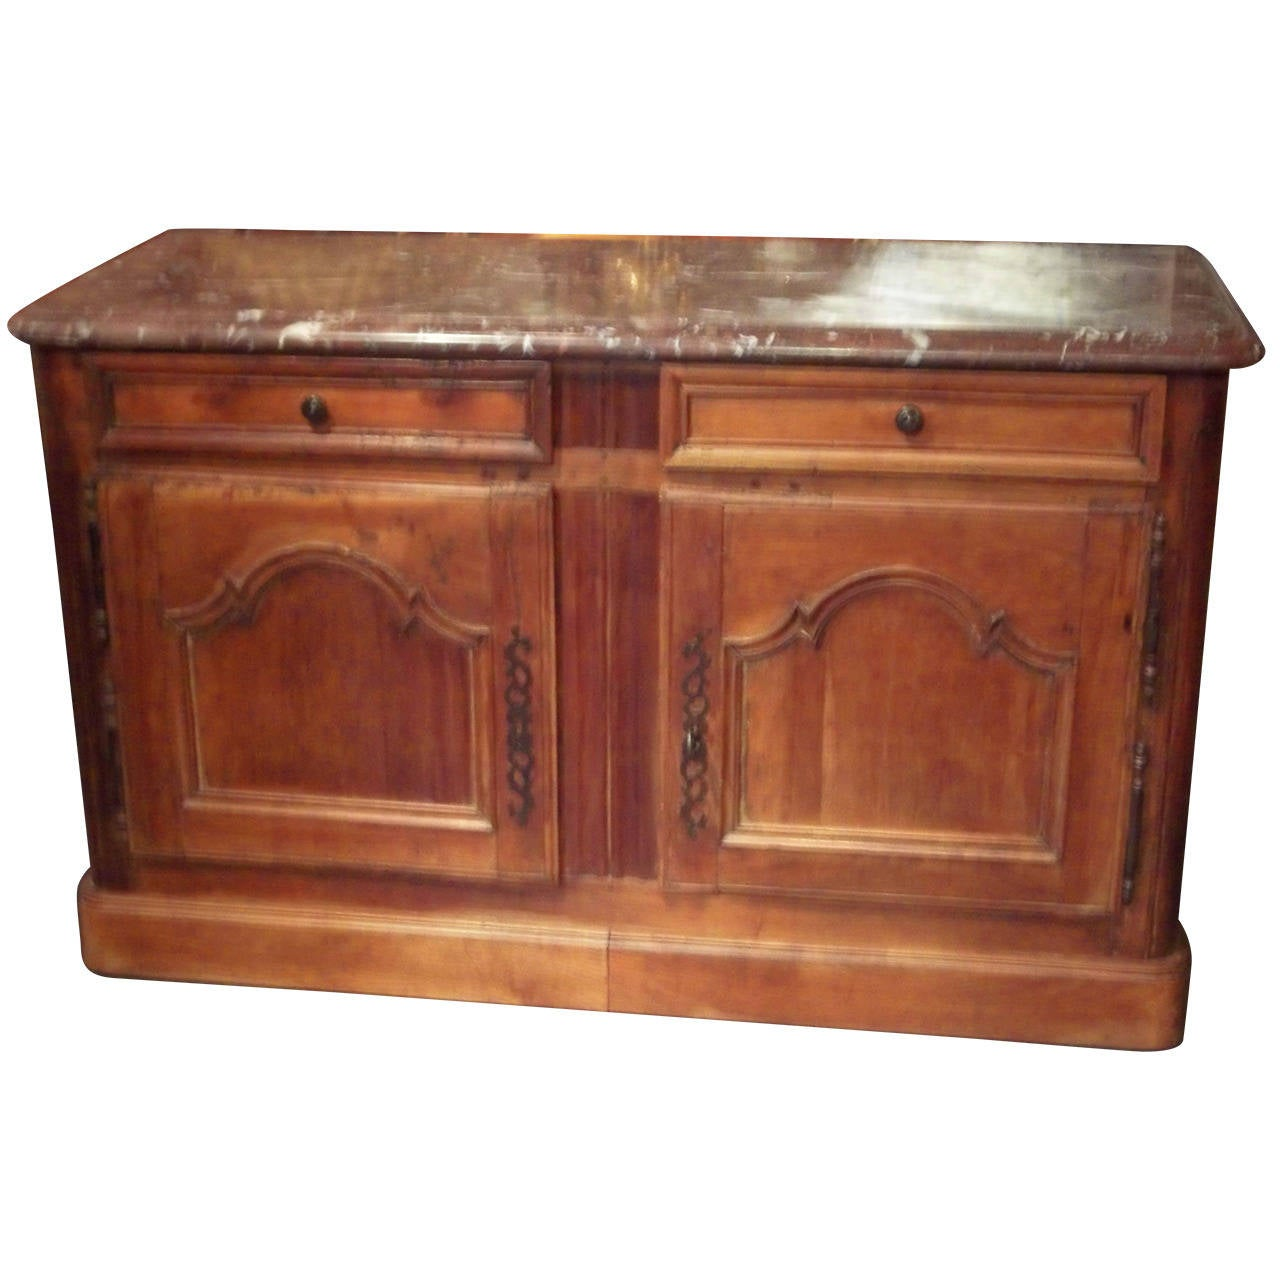 Louis XV Provincial Walnut and Fruitwood Marble Top Sideboard or Buffet